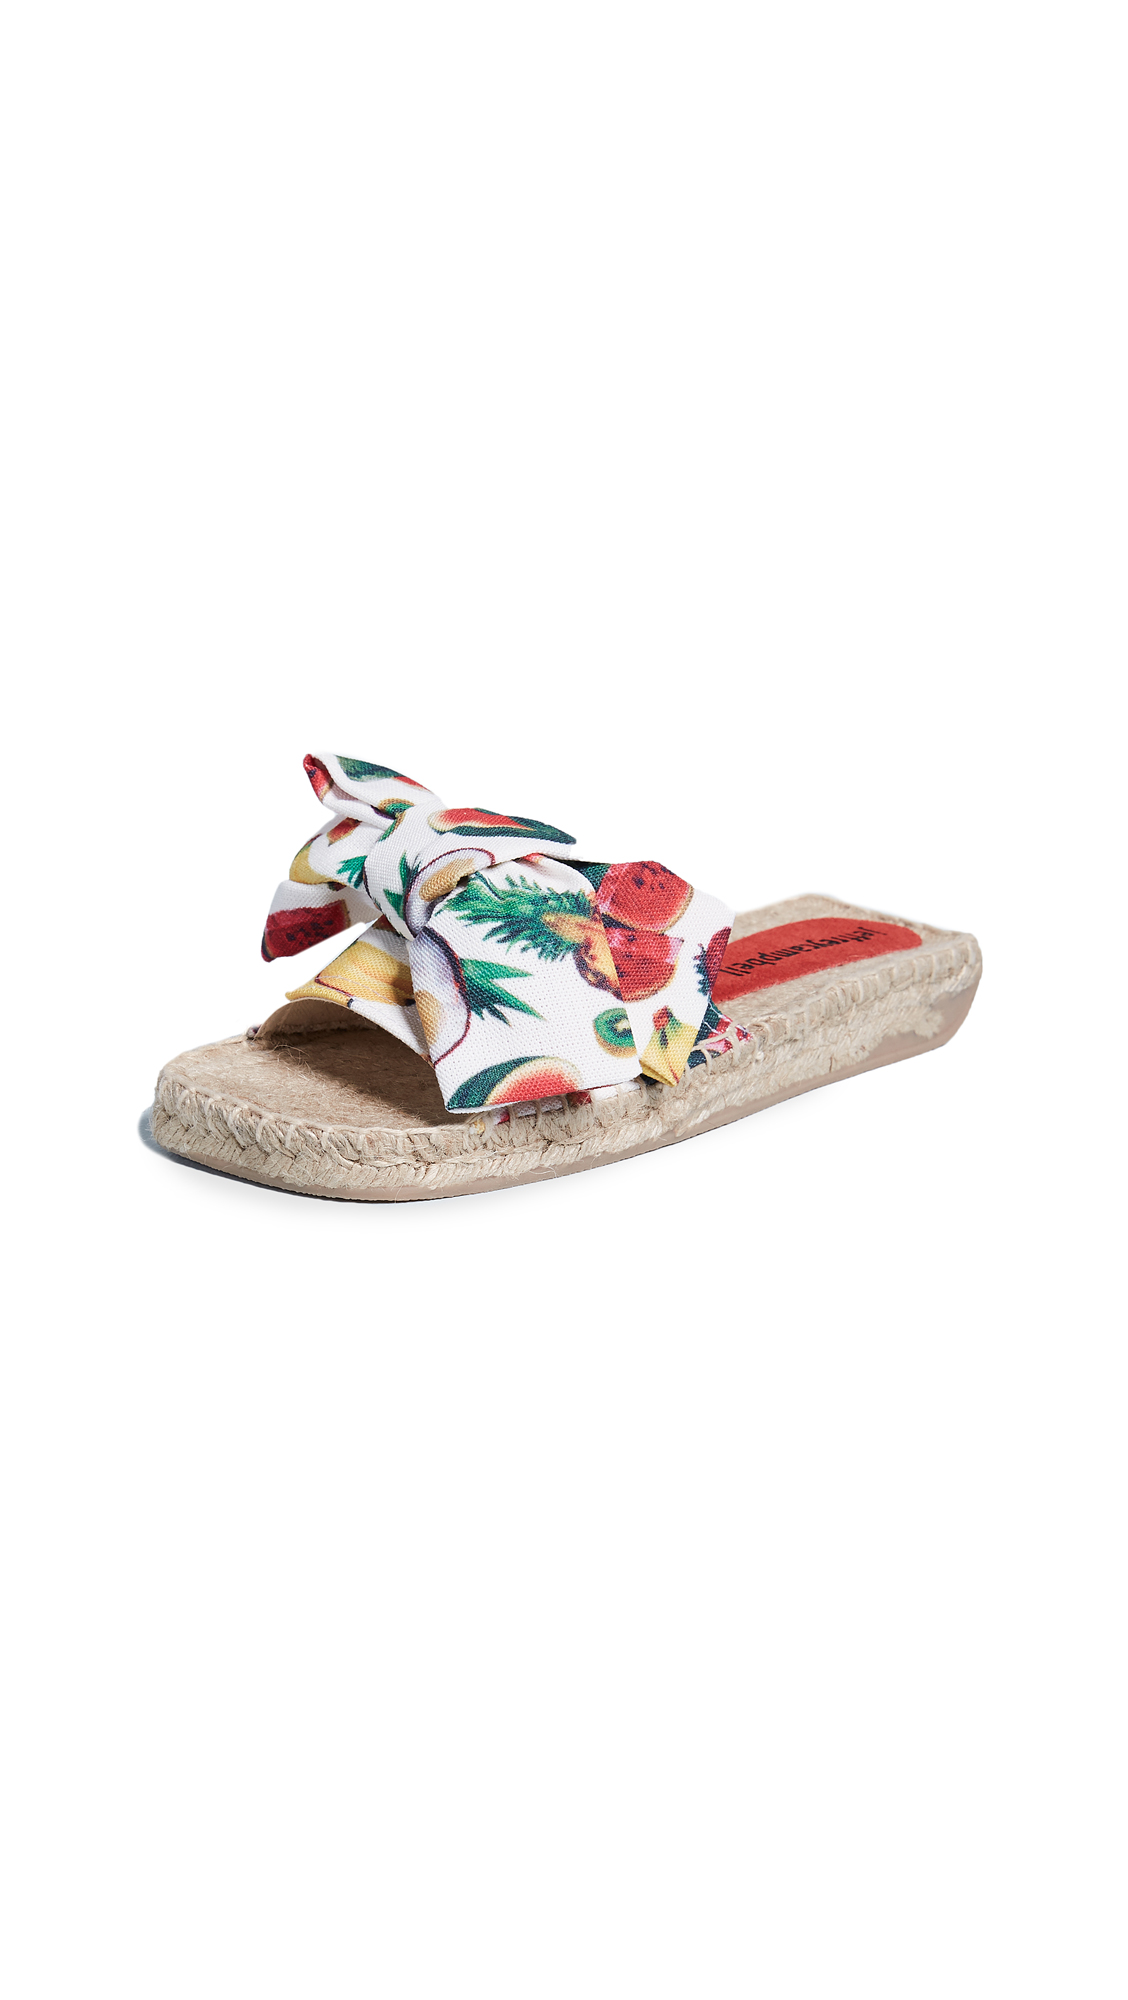 Jeffrey Campbell Print Fruit Slides - White Multi